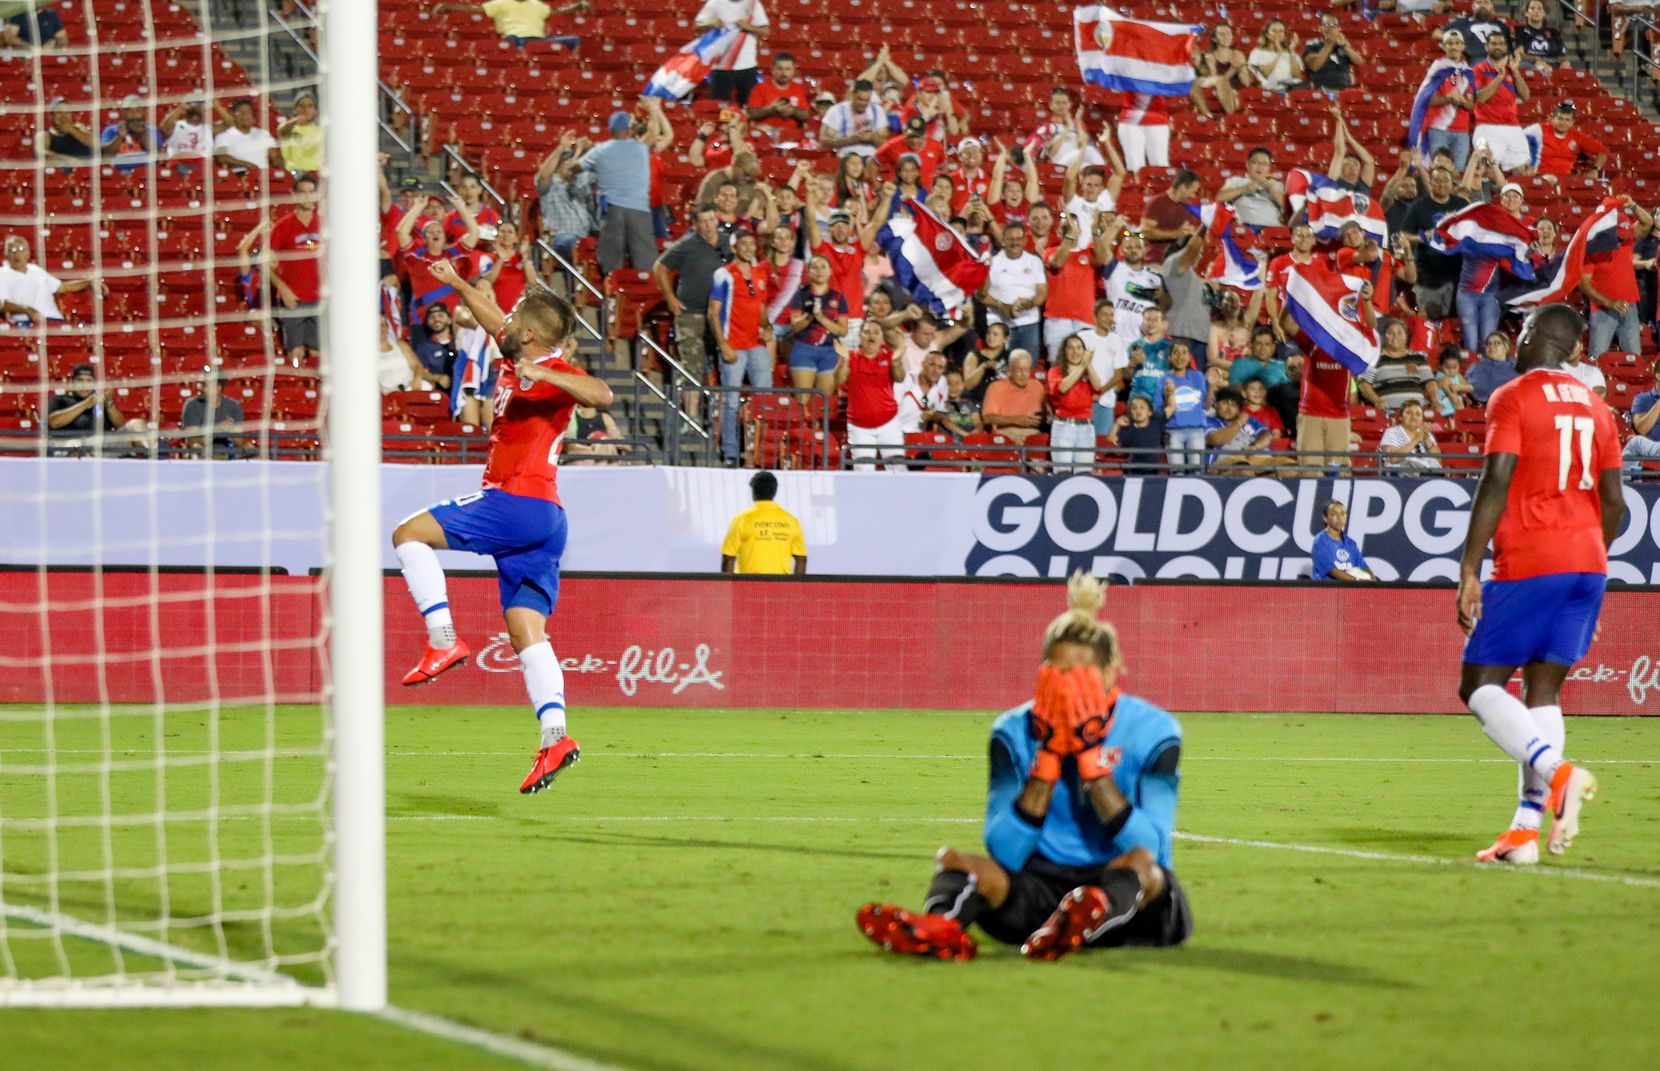 Elias Aguilar of Costa Rica celebrates his 54th minute goal in the 2019 Gold Cup at Toyota Stadium. Bermuda keeper Dale Eve sits distraught.